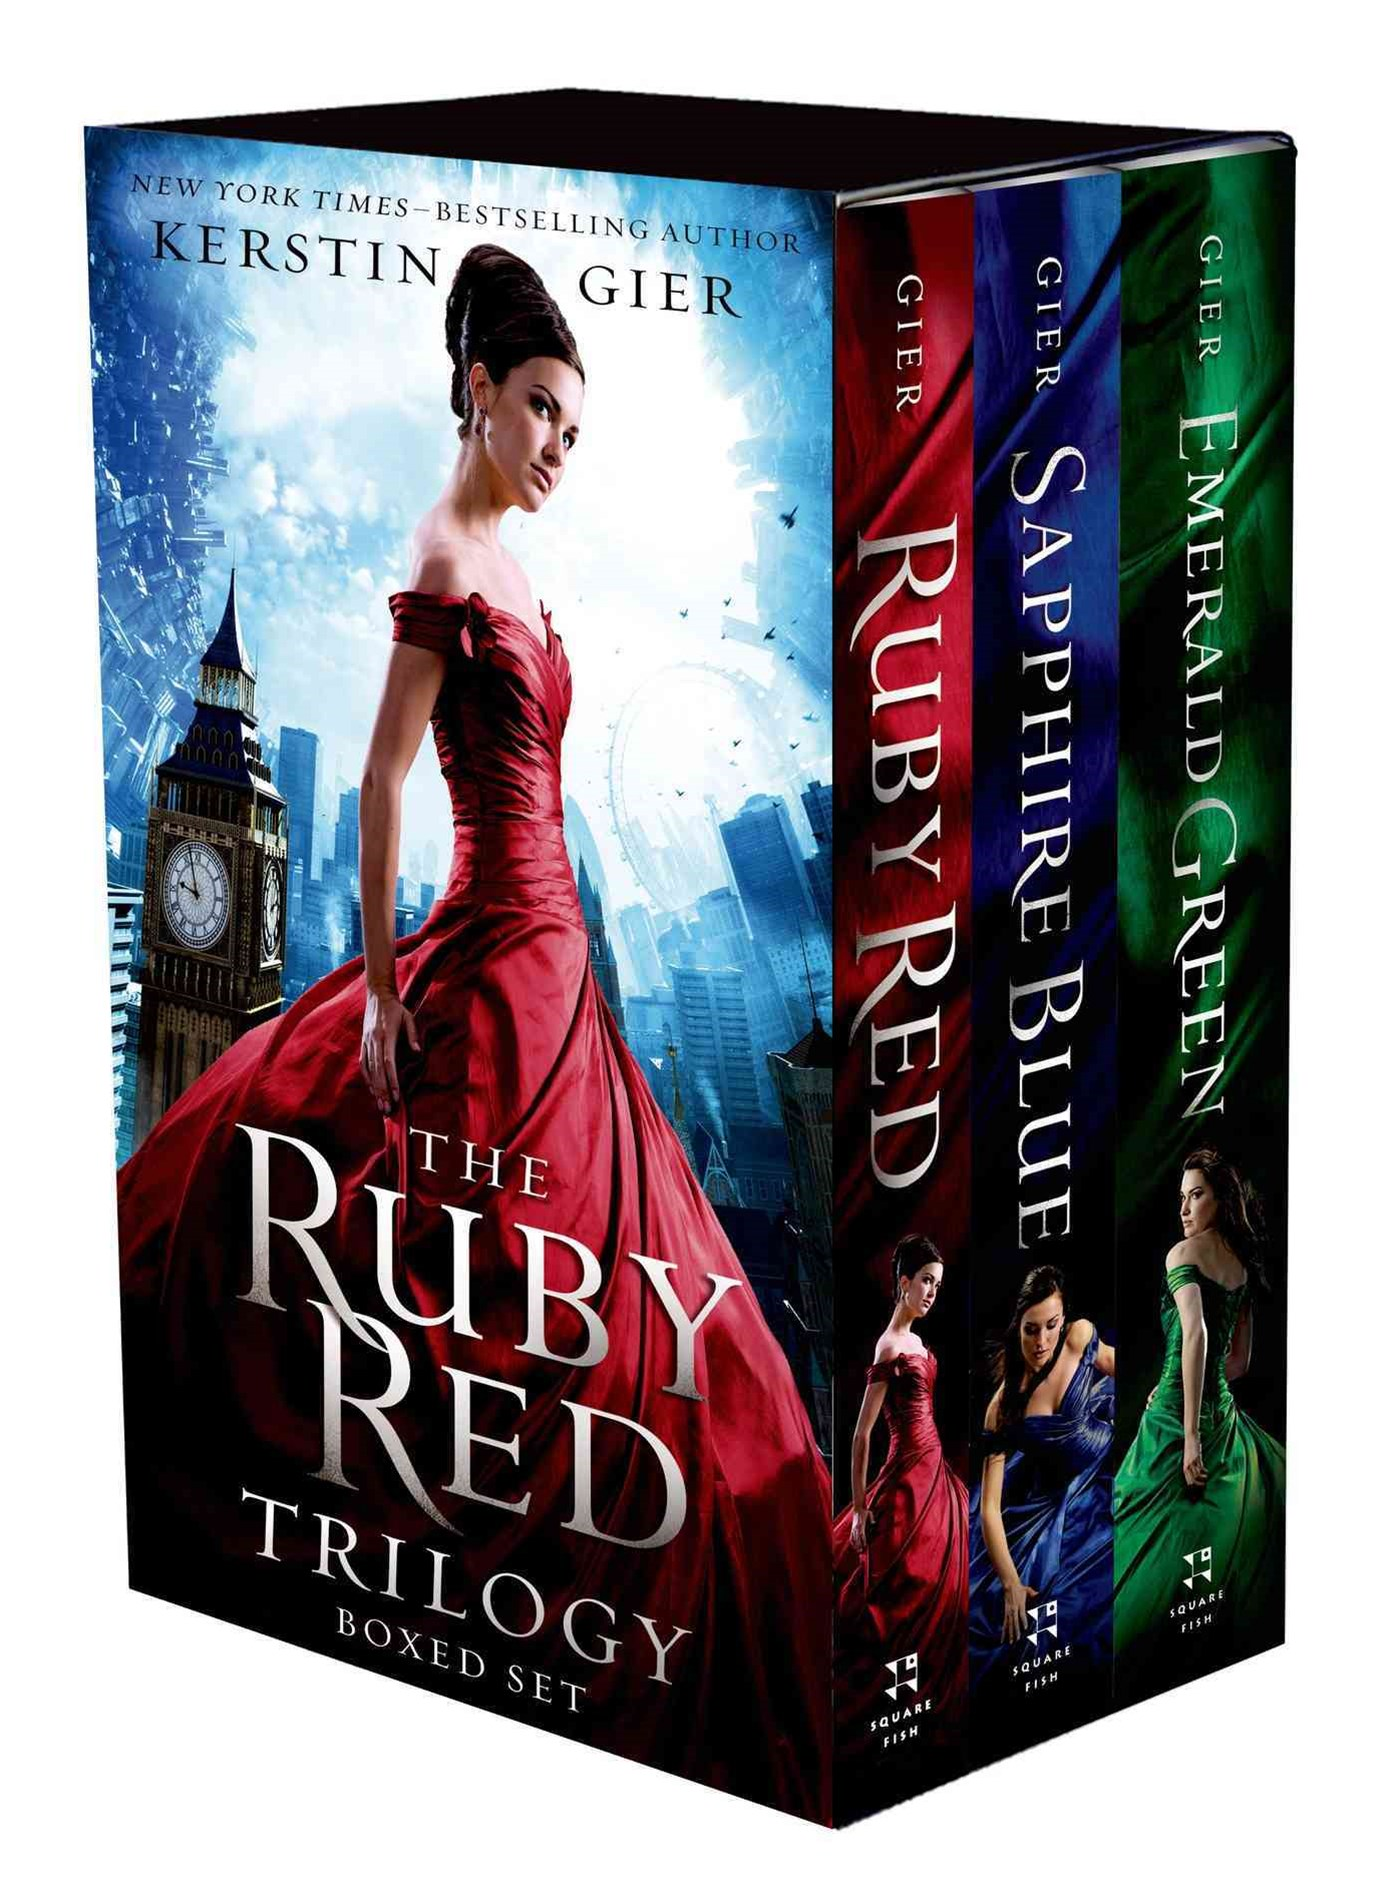 The Ruby Red Trilogy Boxed Set